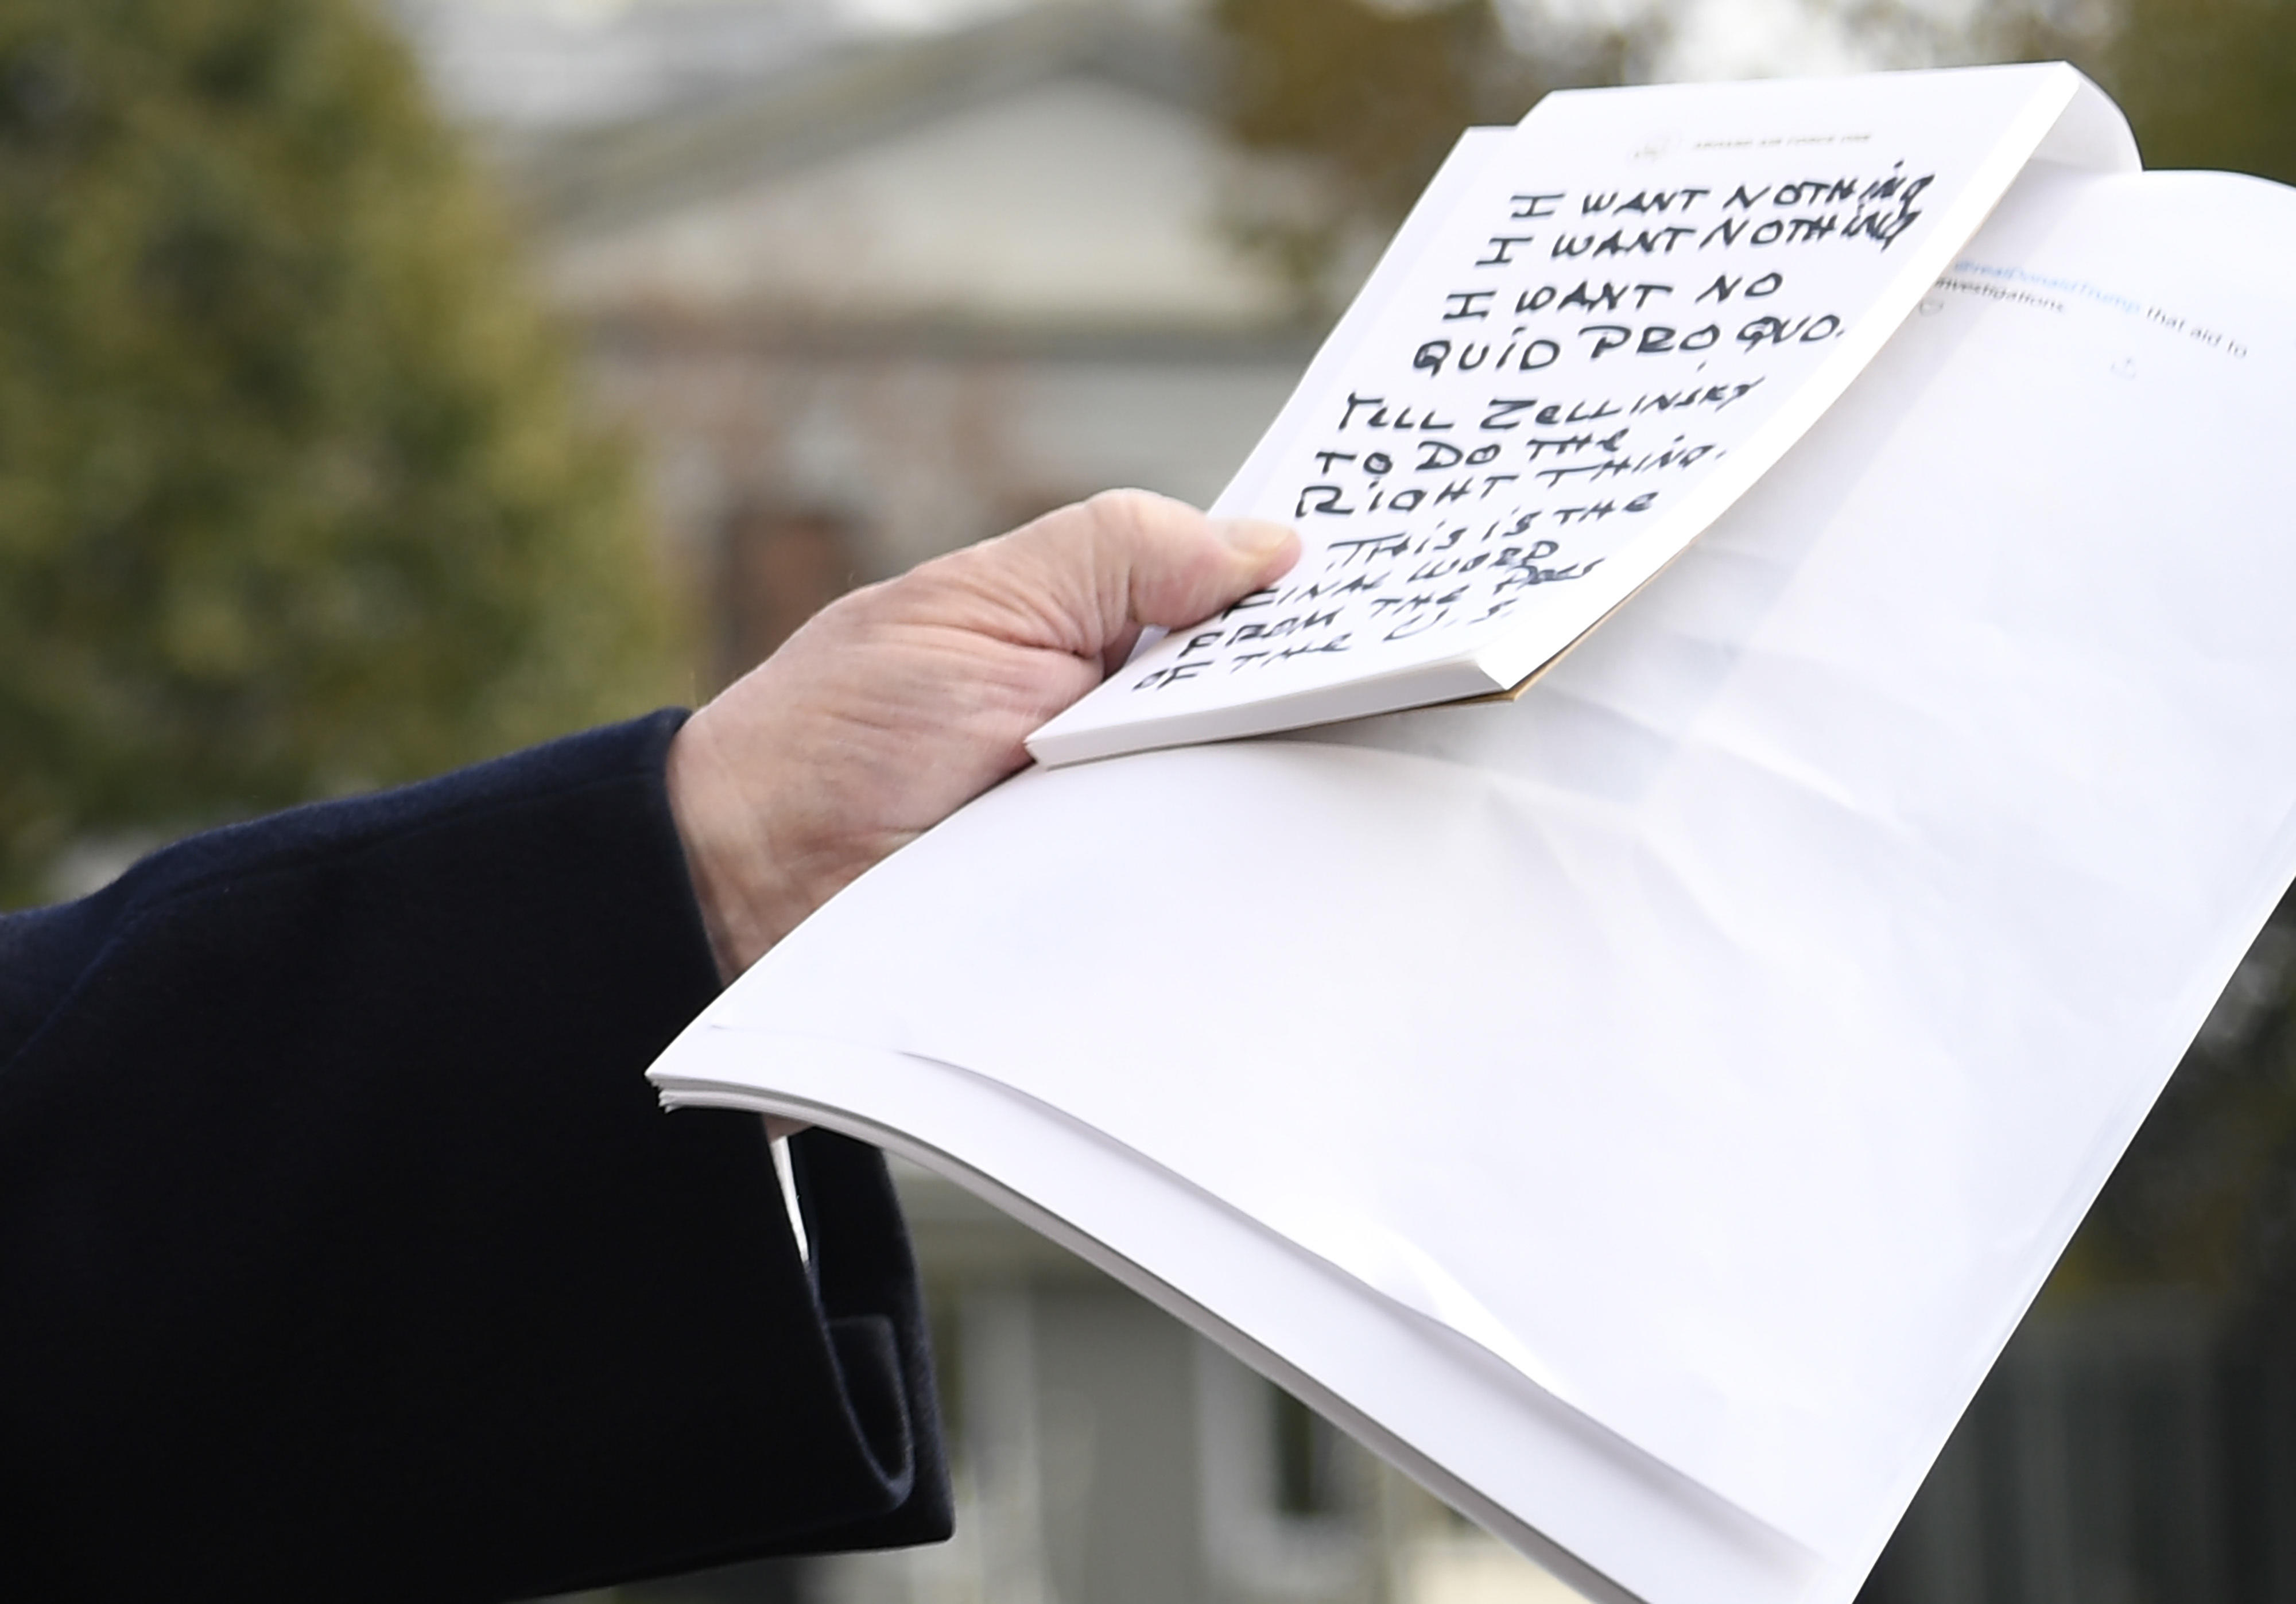 Washington, United States. 20th Nov, 2019. President Donald Trump Holds Handwritten Notes As He Makes Remarks To The Press About The Impeachment Inquiry As He Departs The White House, Wednesday, November20, 2019, In Washington, DC, For A Day Trip To Austin, Texas To Visit A Technology Center. The Notes Read: